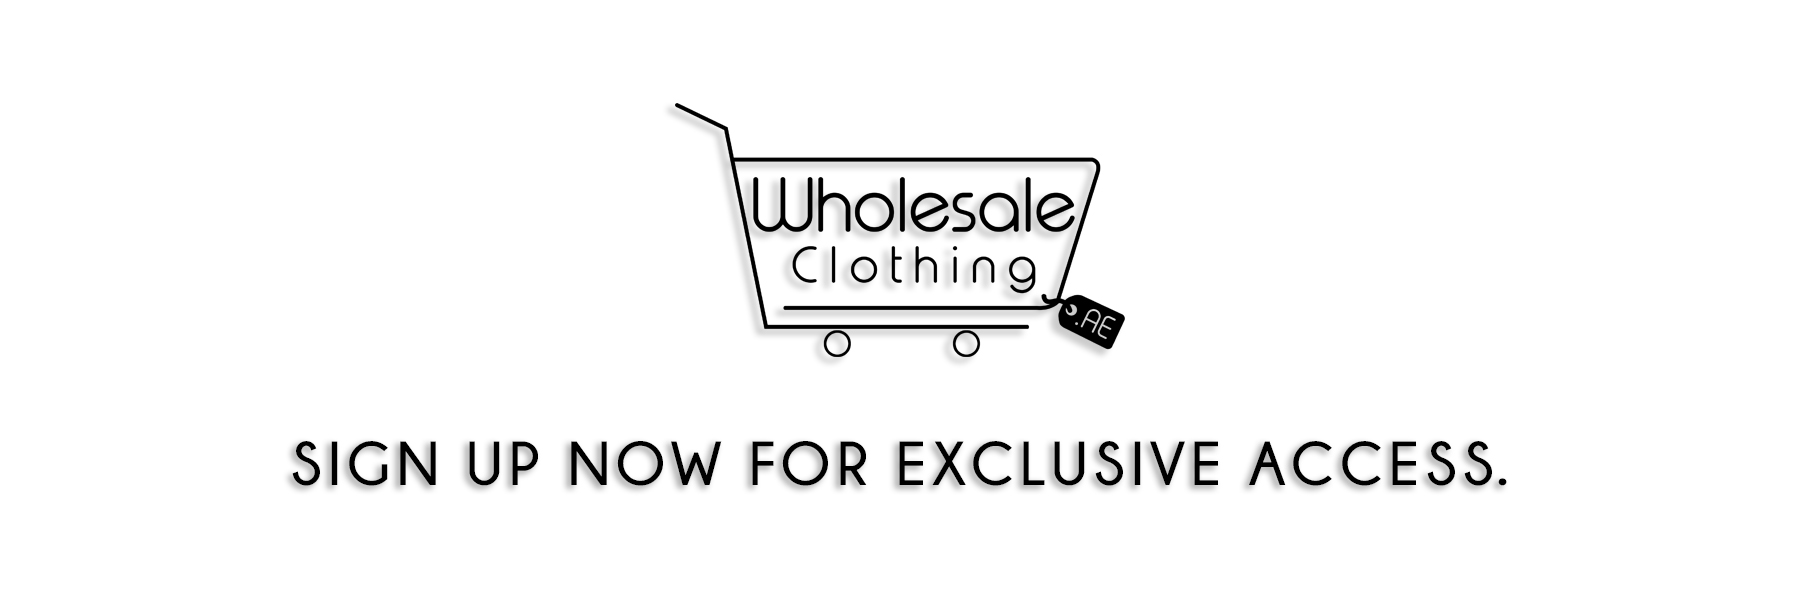 wholesale-clothing-and-garments-supplier-in-dubai-uae-and-middle-east